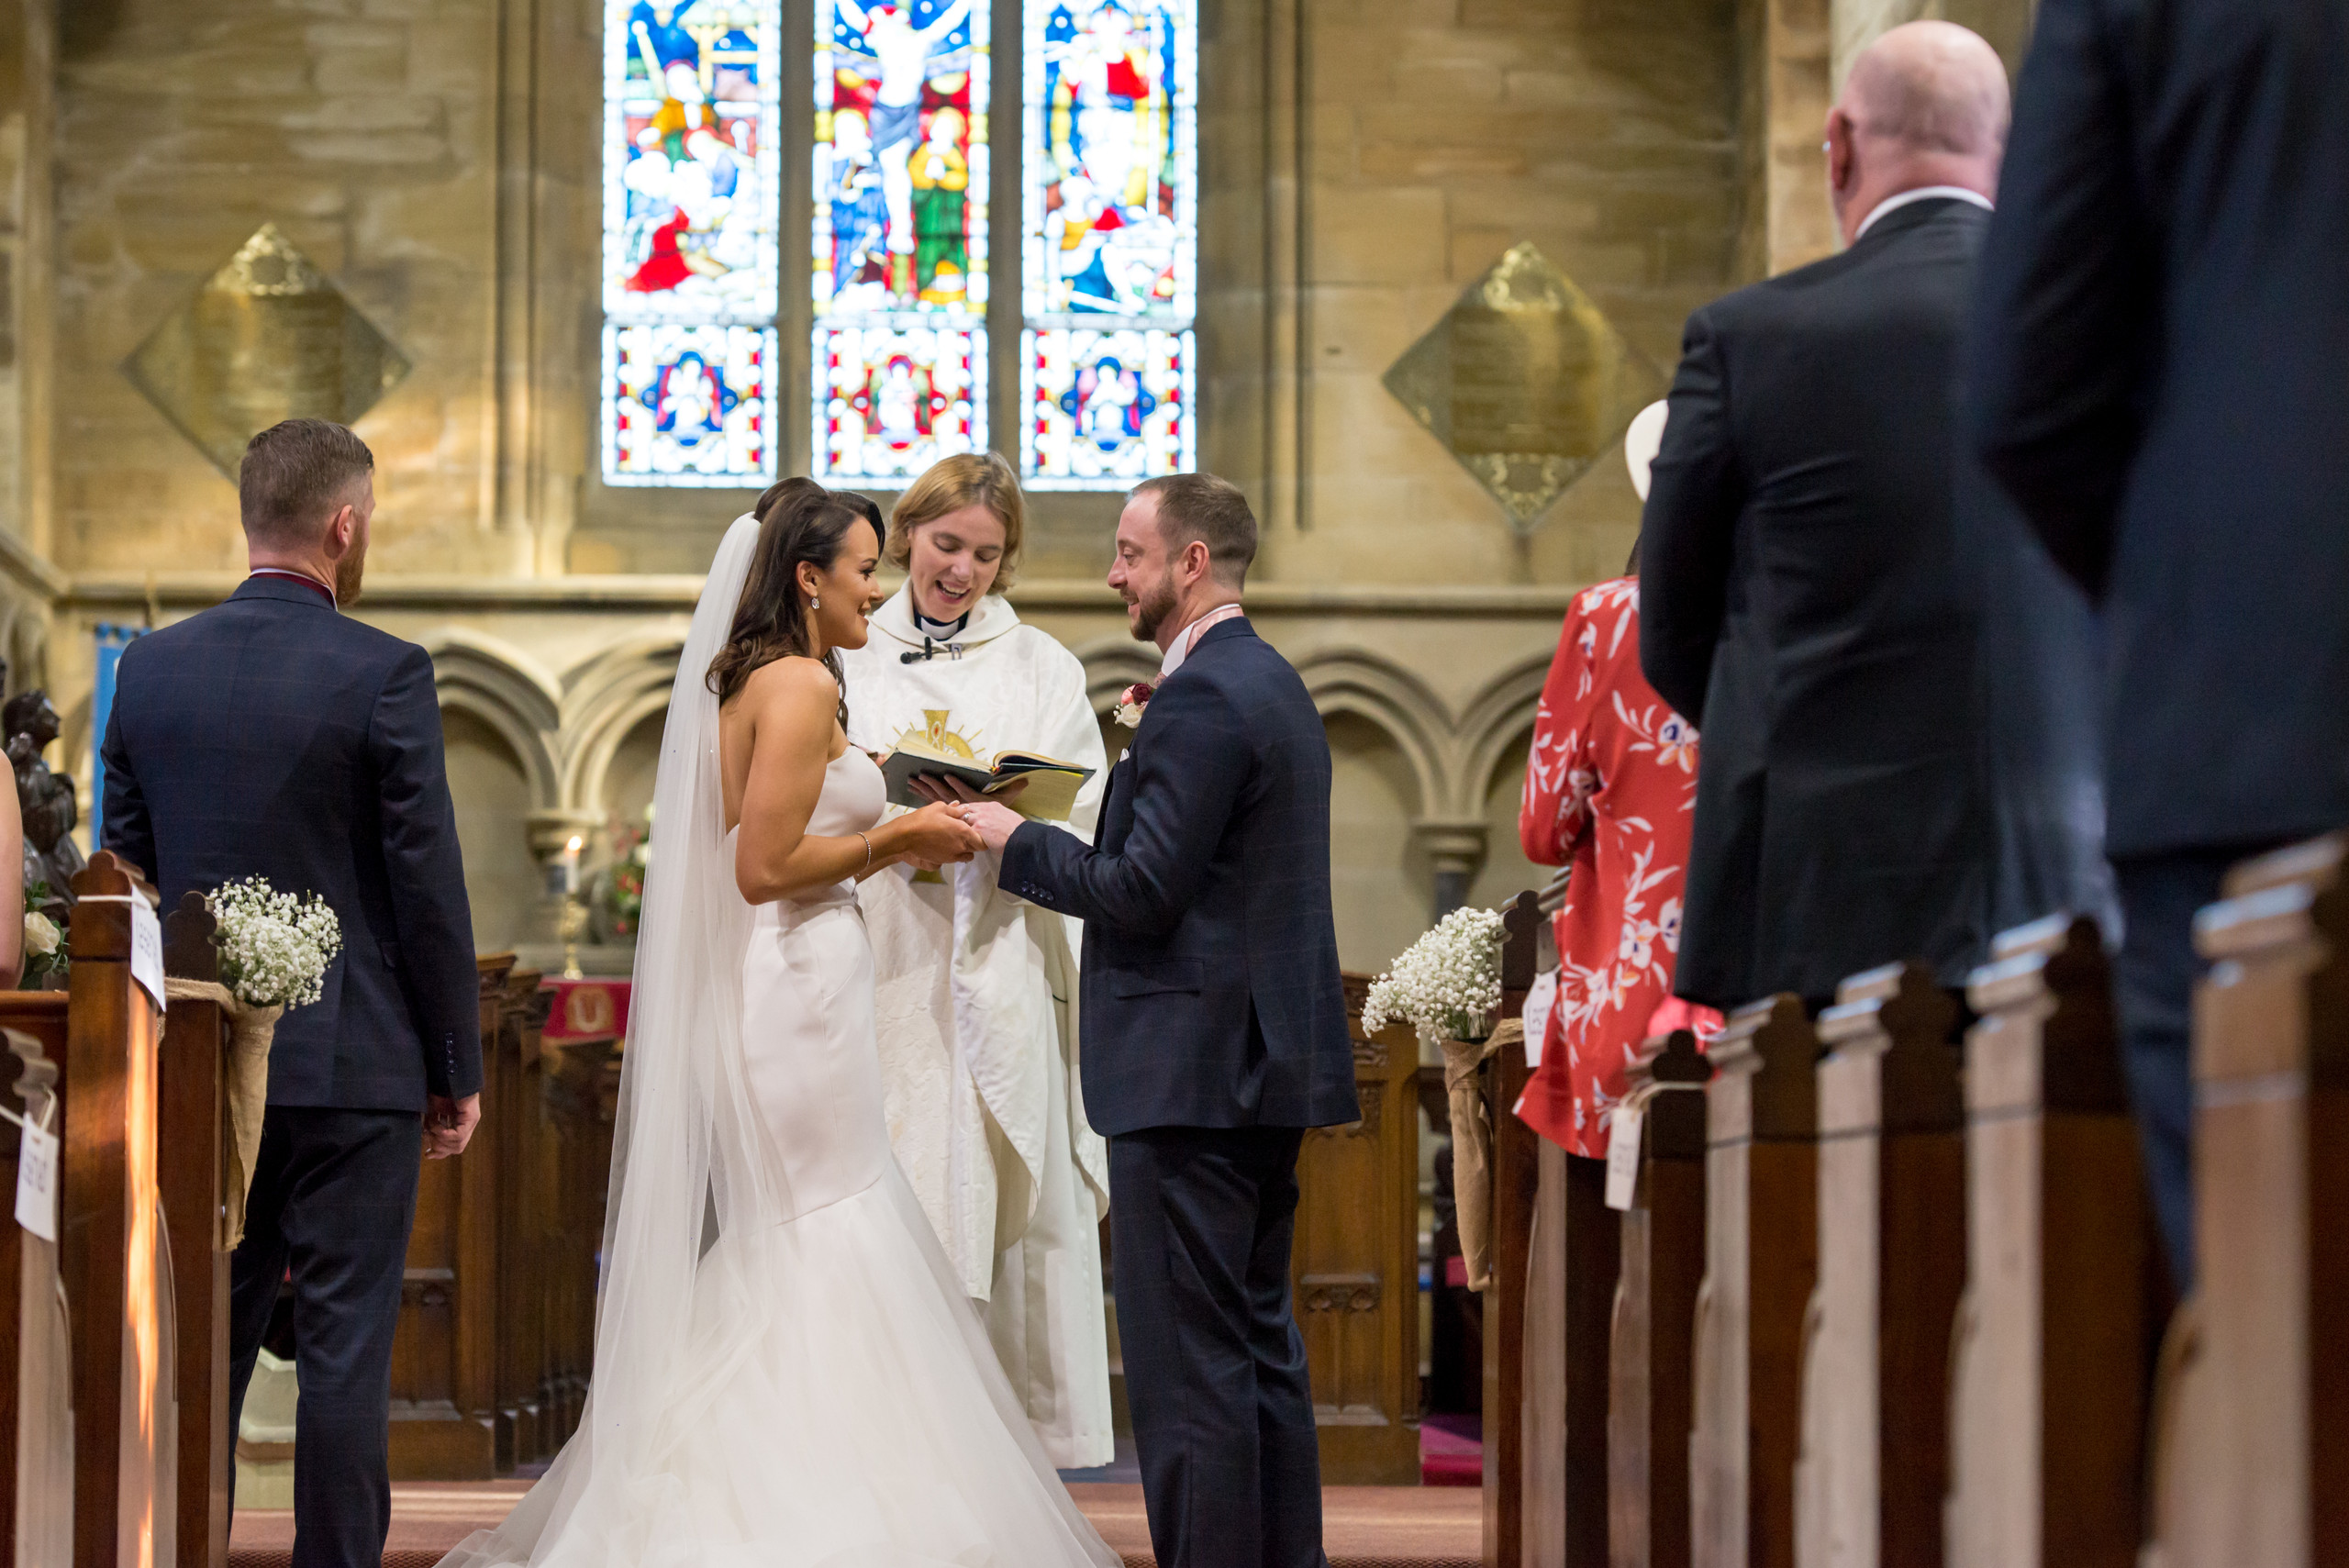 Bride and groom exchanging rings during wedding ceremony in church